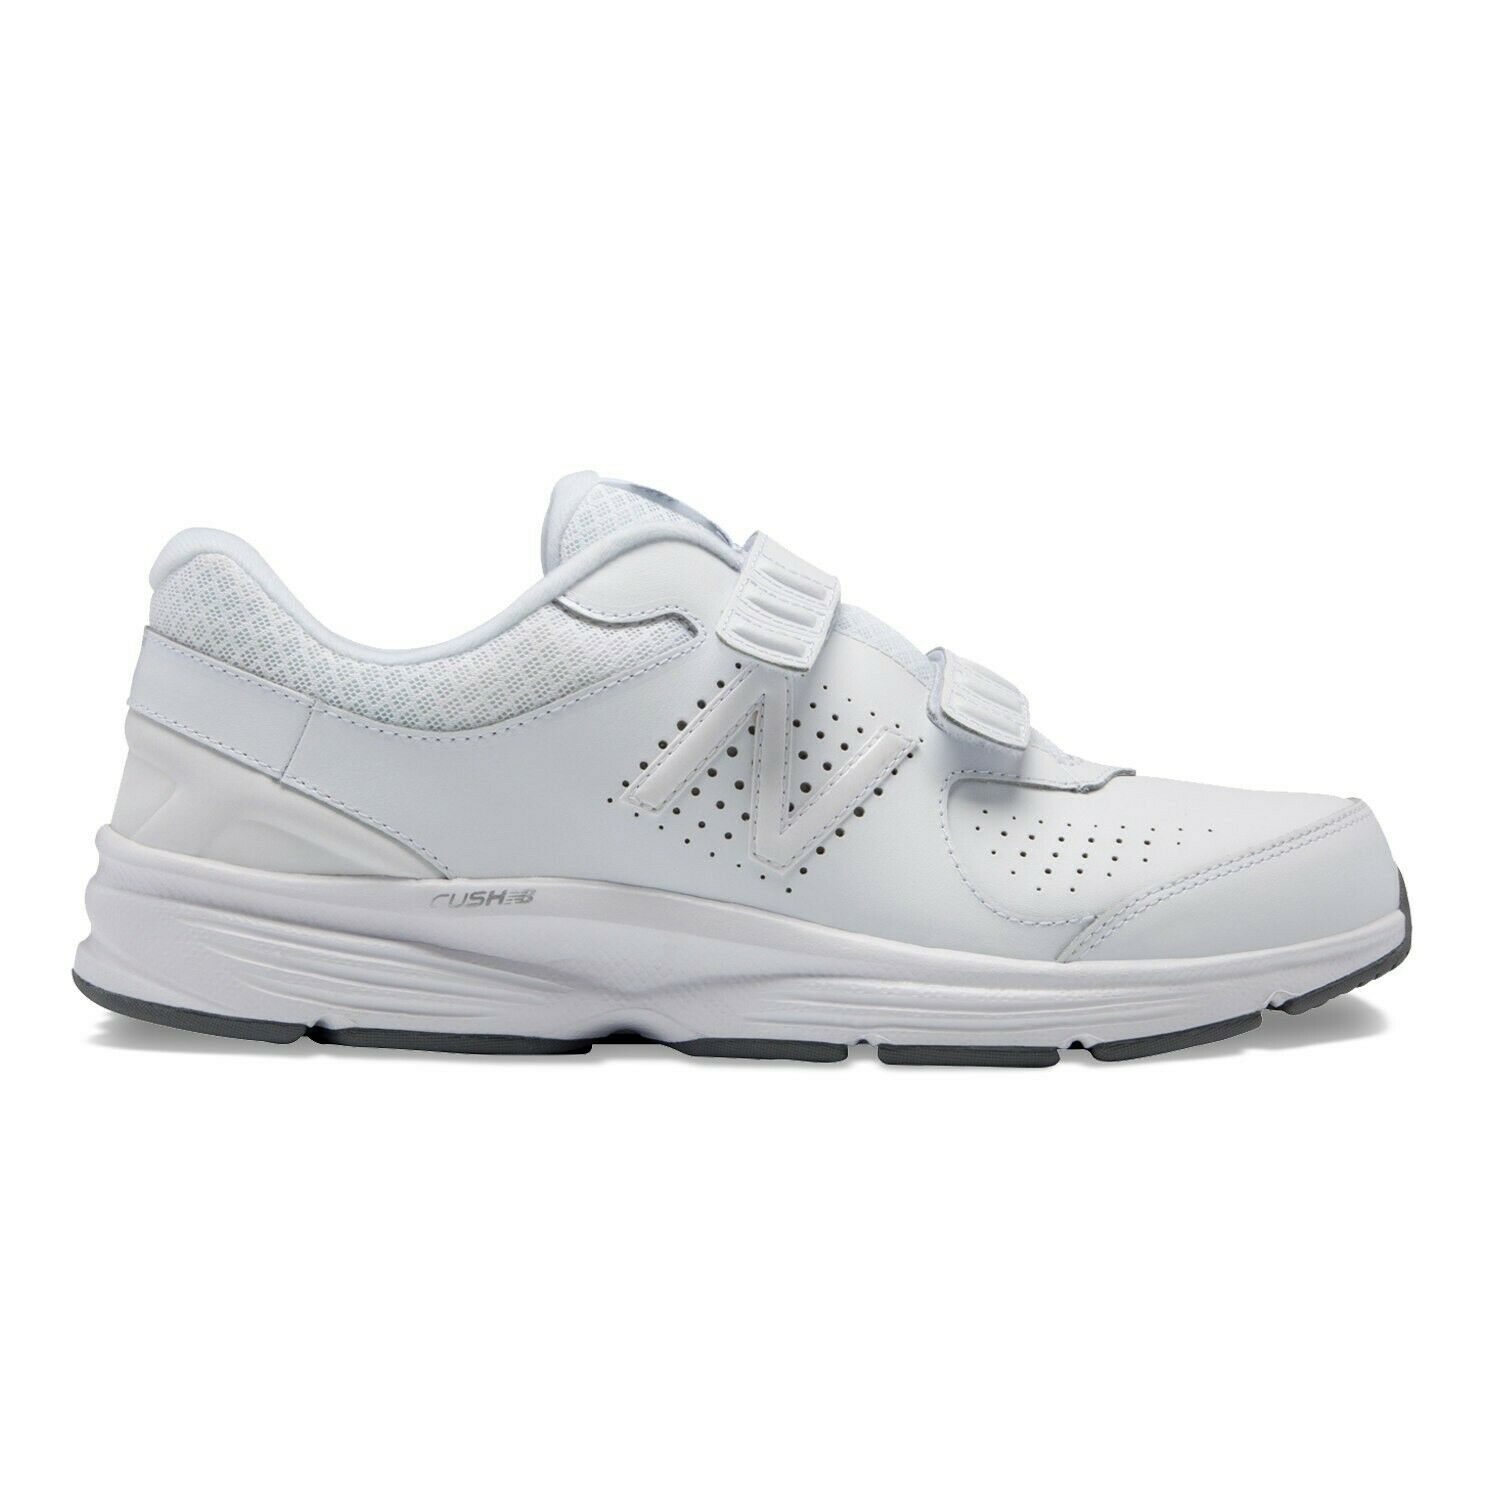 NEW BALANCE 411 V2 Hook and Loop Walking MENS D Medium Width White MW411HT2